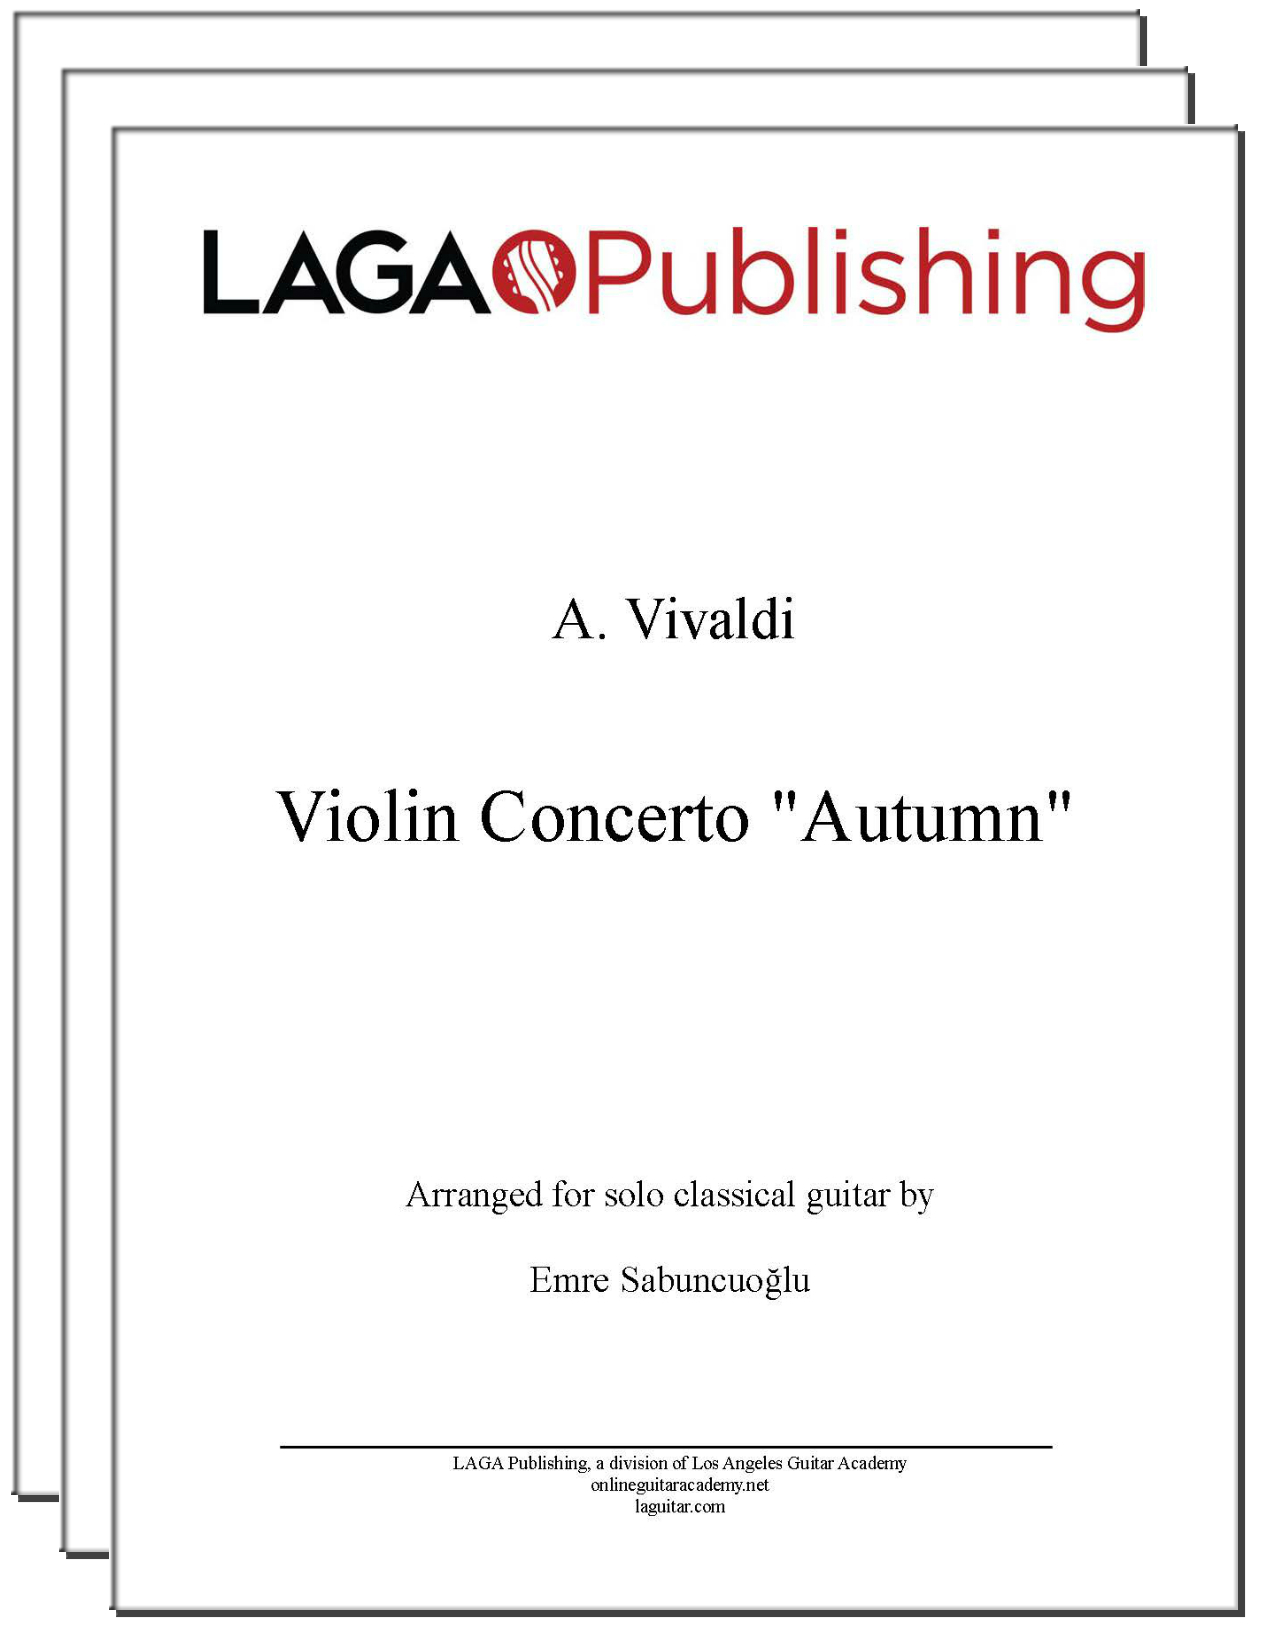 LAGA-Publishing-Vivaldi-4Seasons-Autumn-I-bundle1